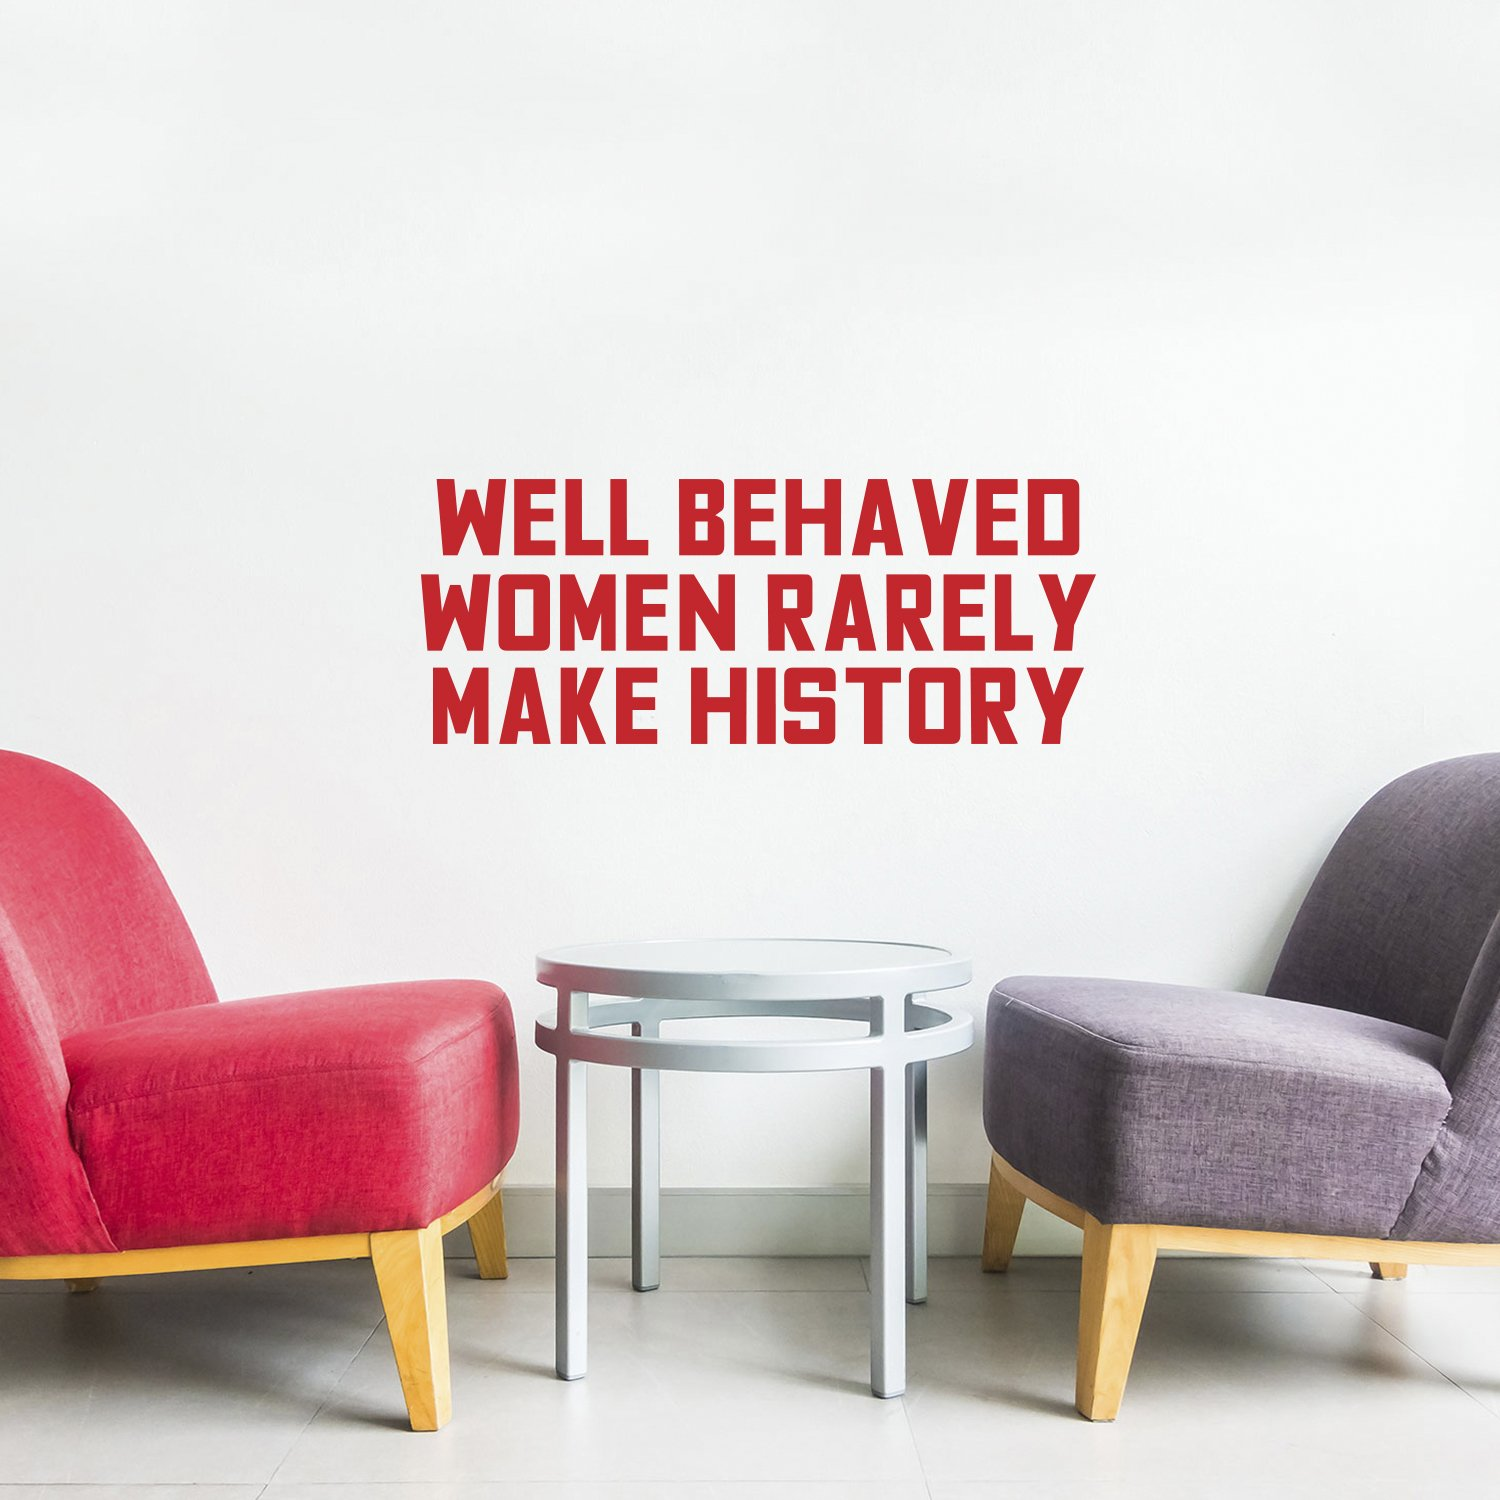 Vinyl Wall Art Decal - Well Behaved Women Rarely Make History - 9'' x 23'' - Motivational Women's Encouragement Sticker Adhesive For Home Decor - Bedroom Wall Office Peel Off Decals (9'' x 23'', Red)